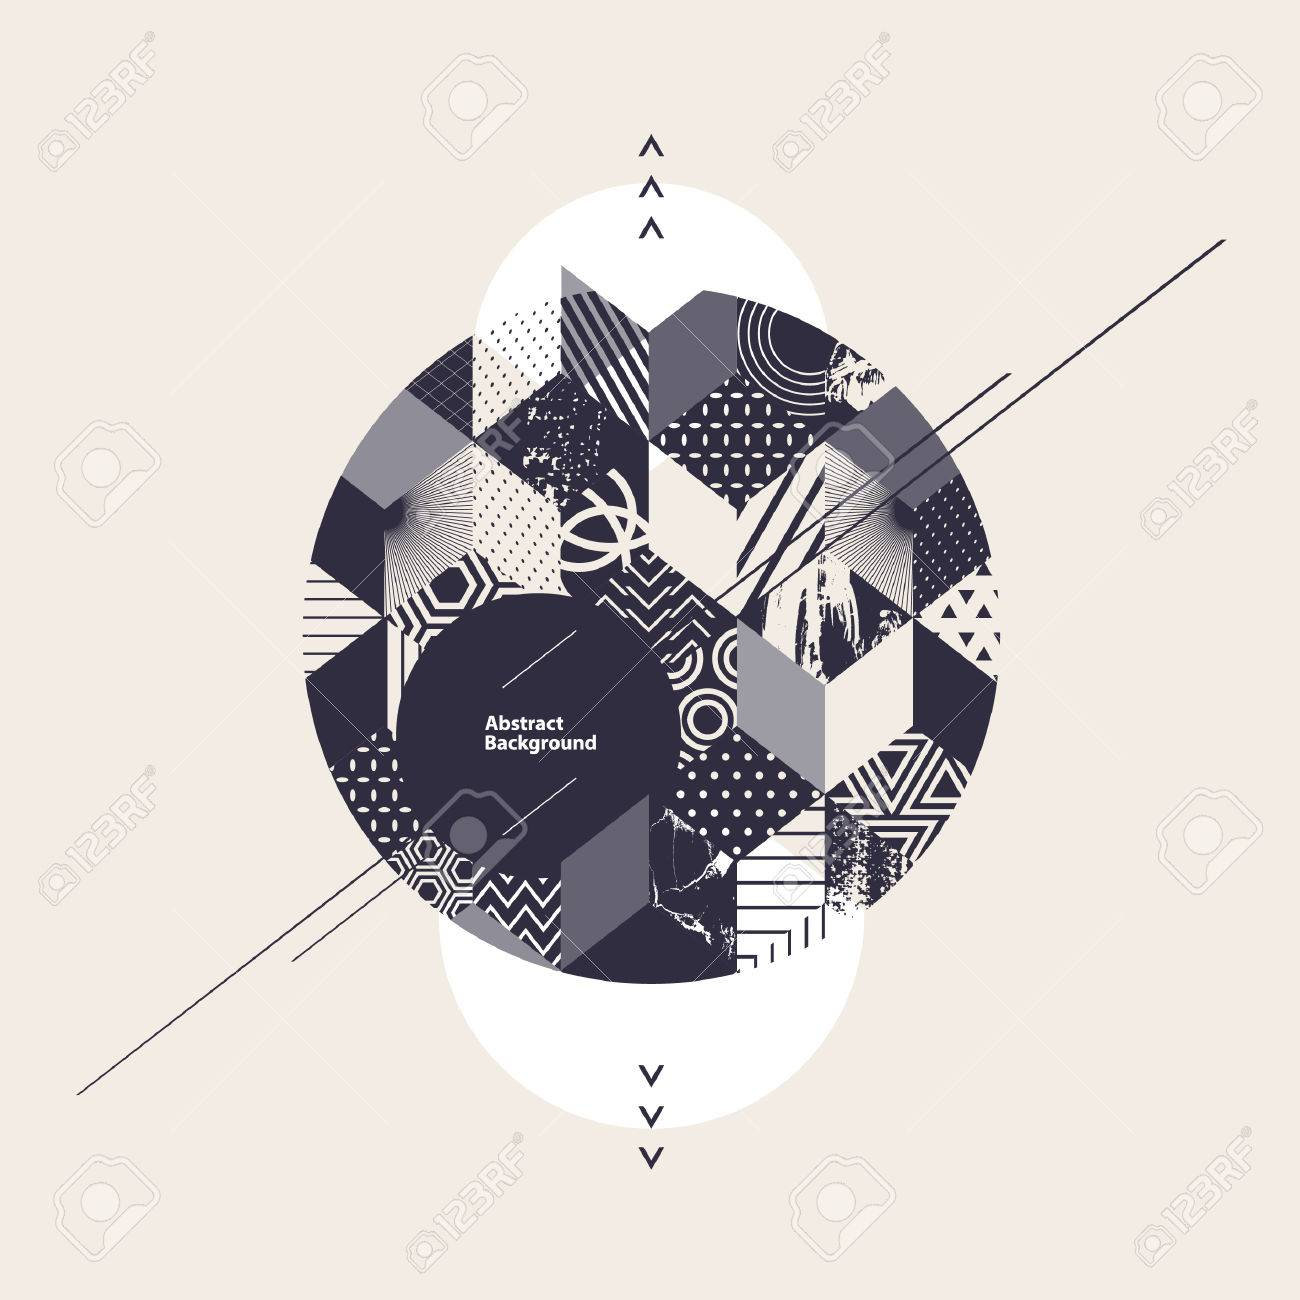 Abstract geometric background with circle - 58418383